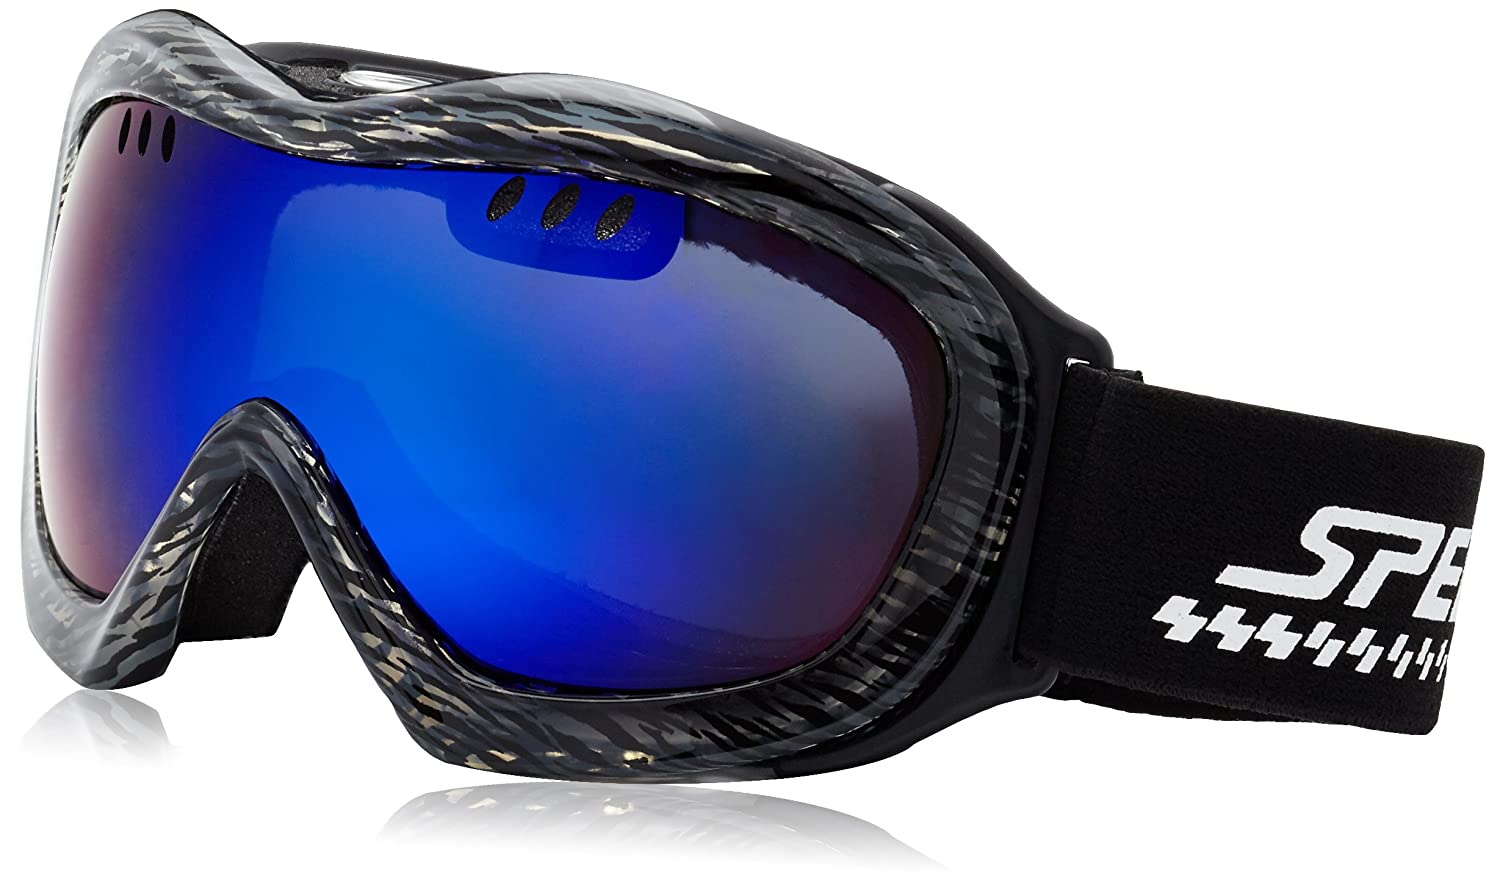 Speeron Winter Sport: Superleichte Hightech-Ski- & Snowboardbrille inkl. Hardcase (Skibrillen)